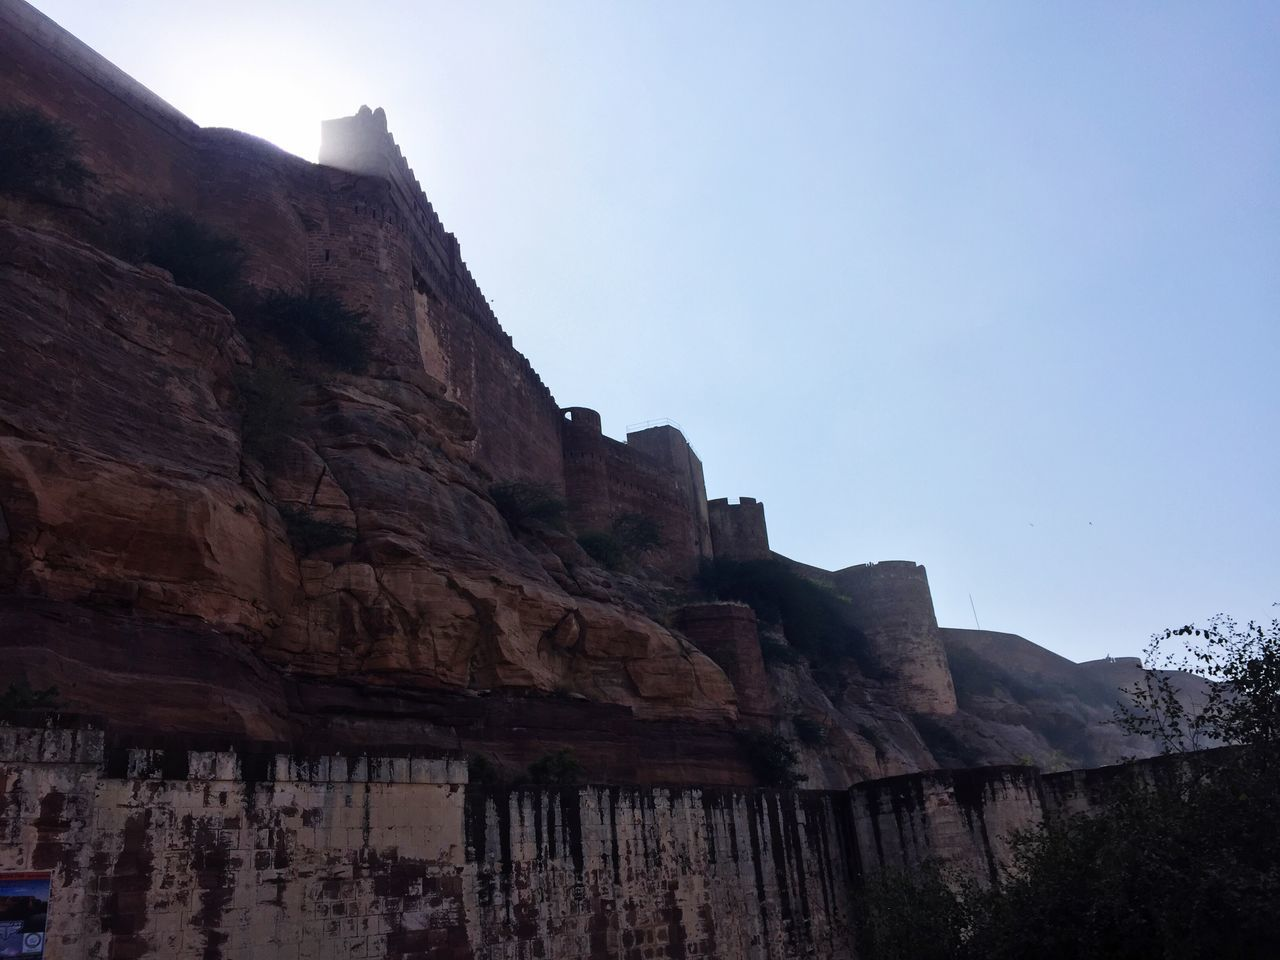 Mehrangarh Fort Outdoors Rock - Object Physical Geography Mountain Sky Day Scenics Travel Taking Photos EyeEm EyeEm Gallery IPhoneography Eye4photography  EyeEmBestPics Getting Inspired First Eyeem Photo From My Point Of View EyeEm Best Shots Built Structure